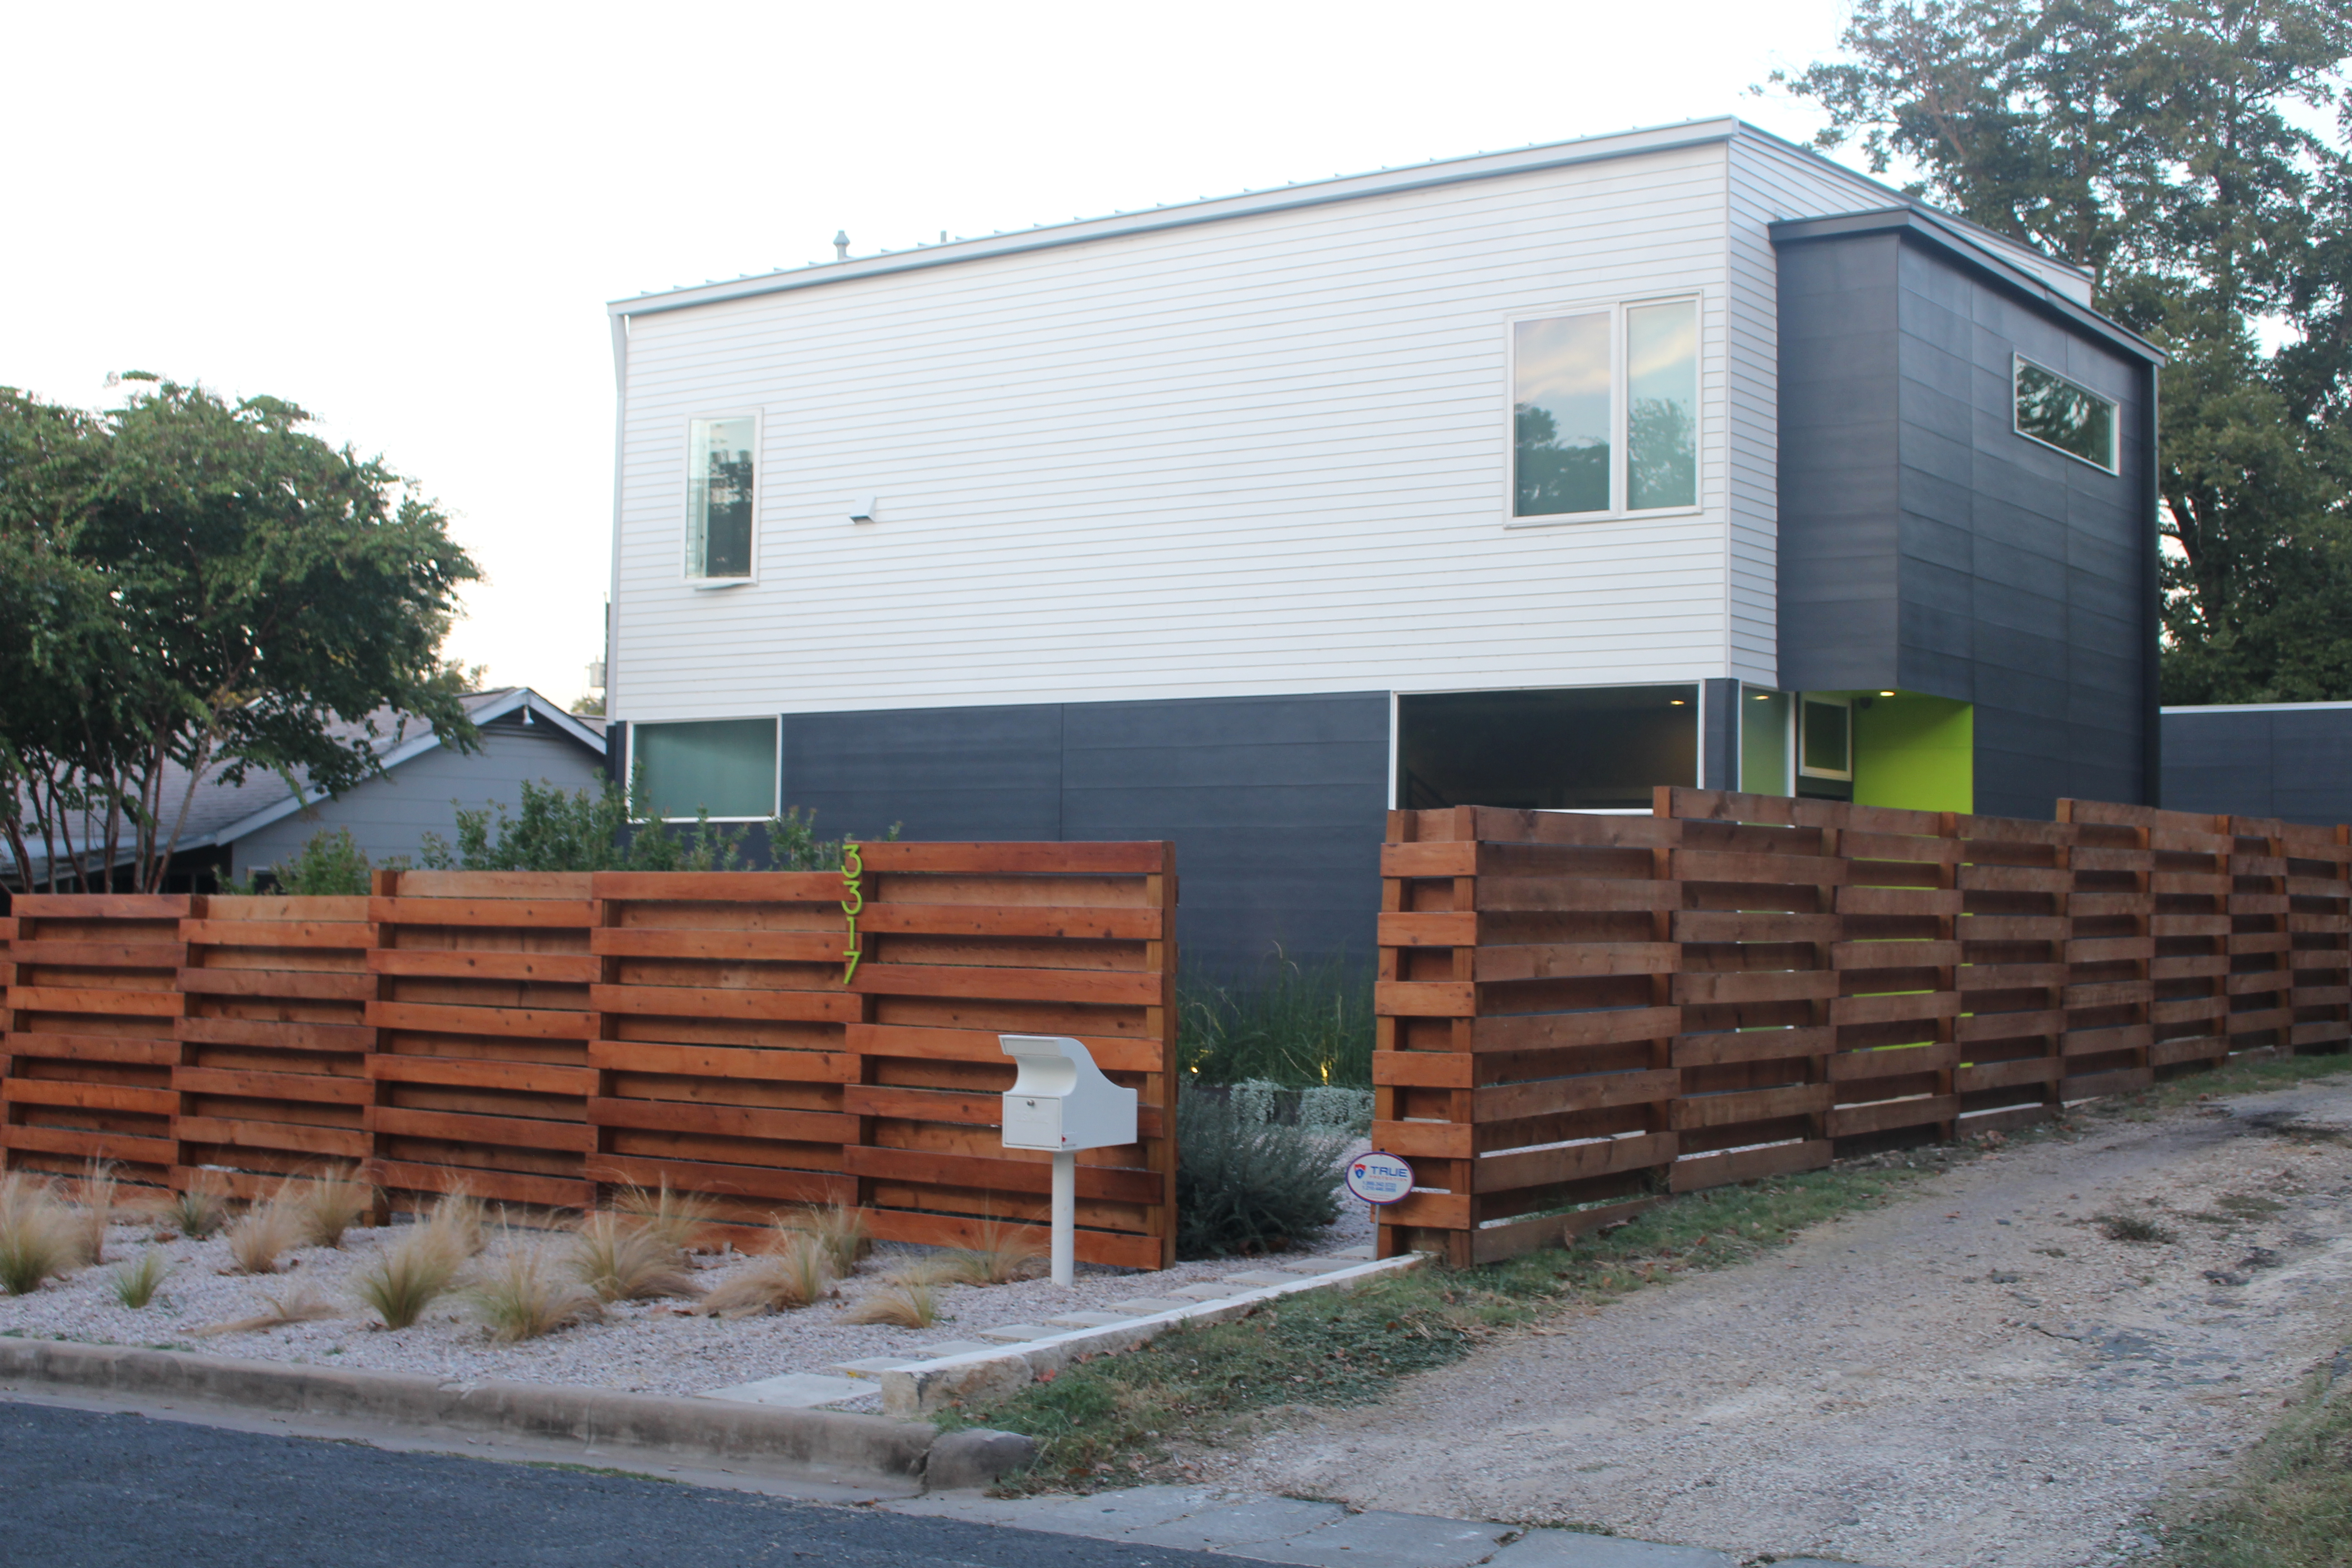 This modern home is one of many examples of gentrification in East Austin